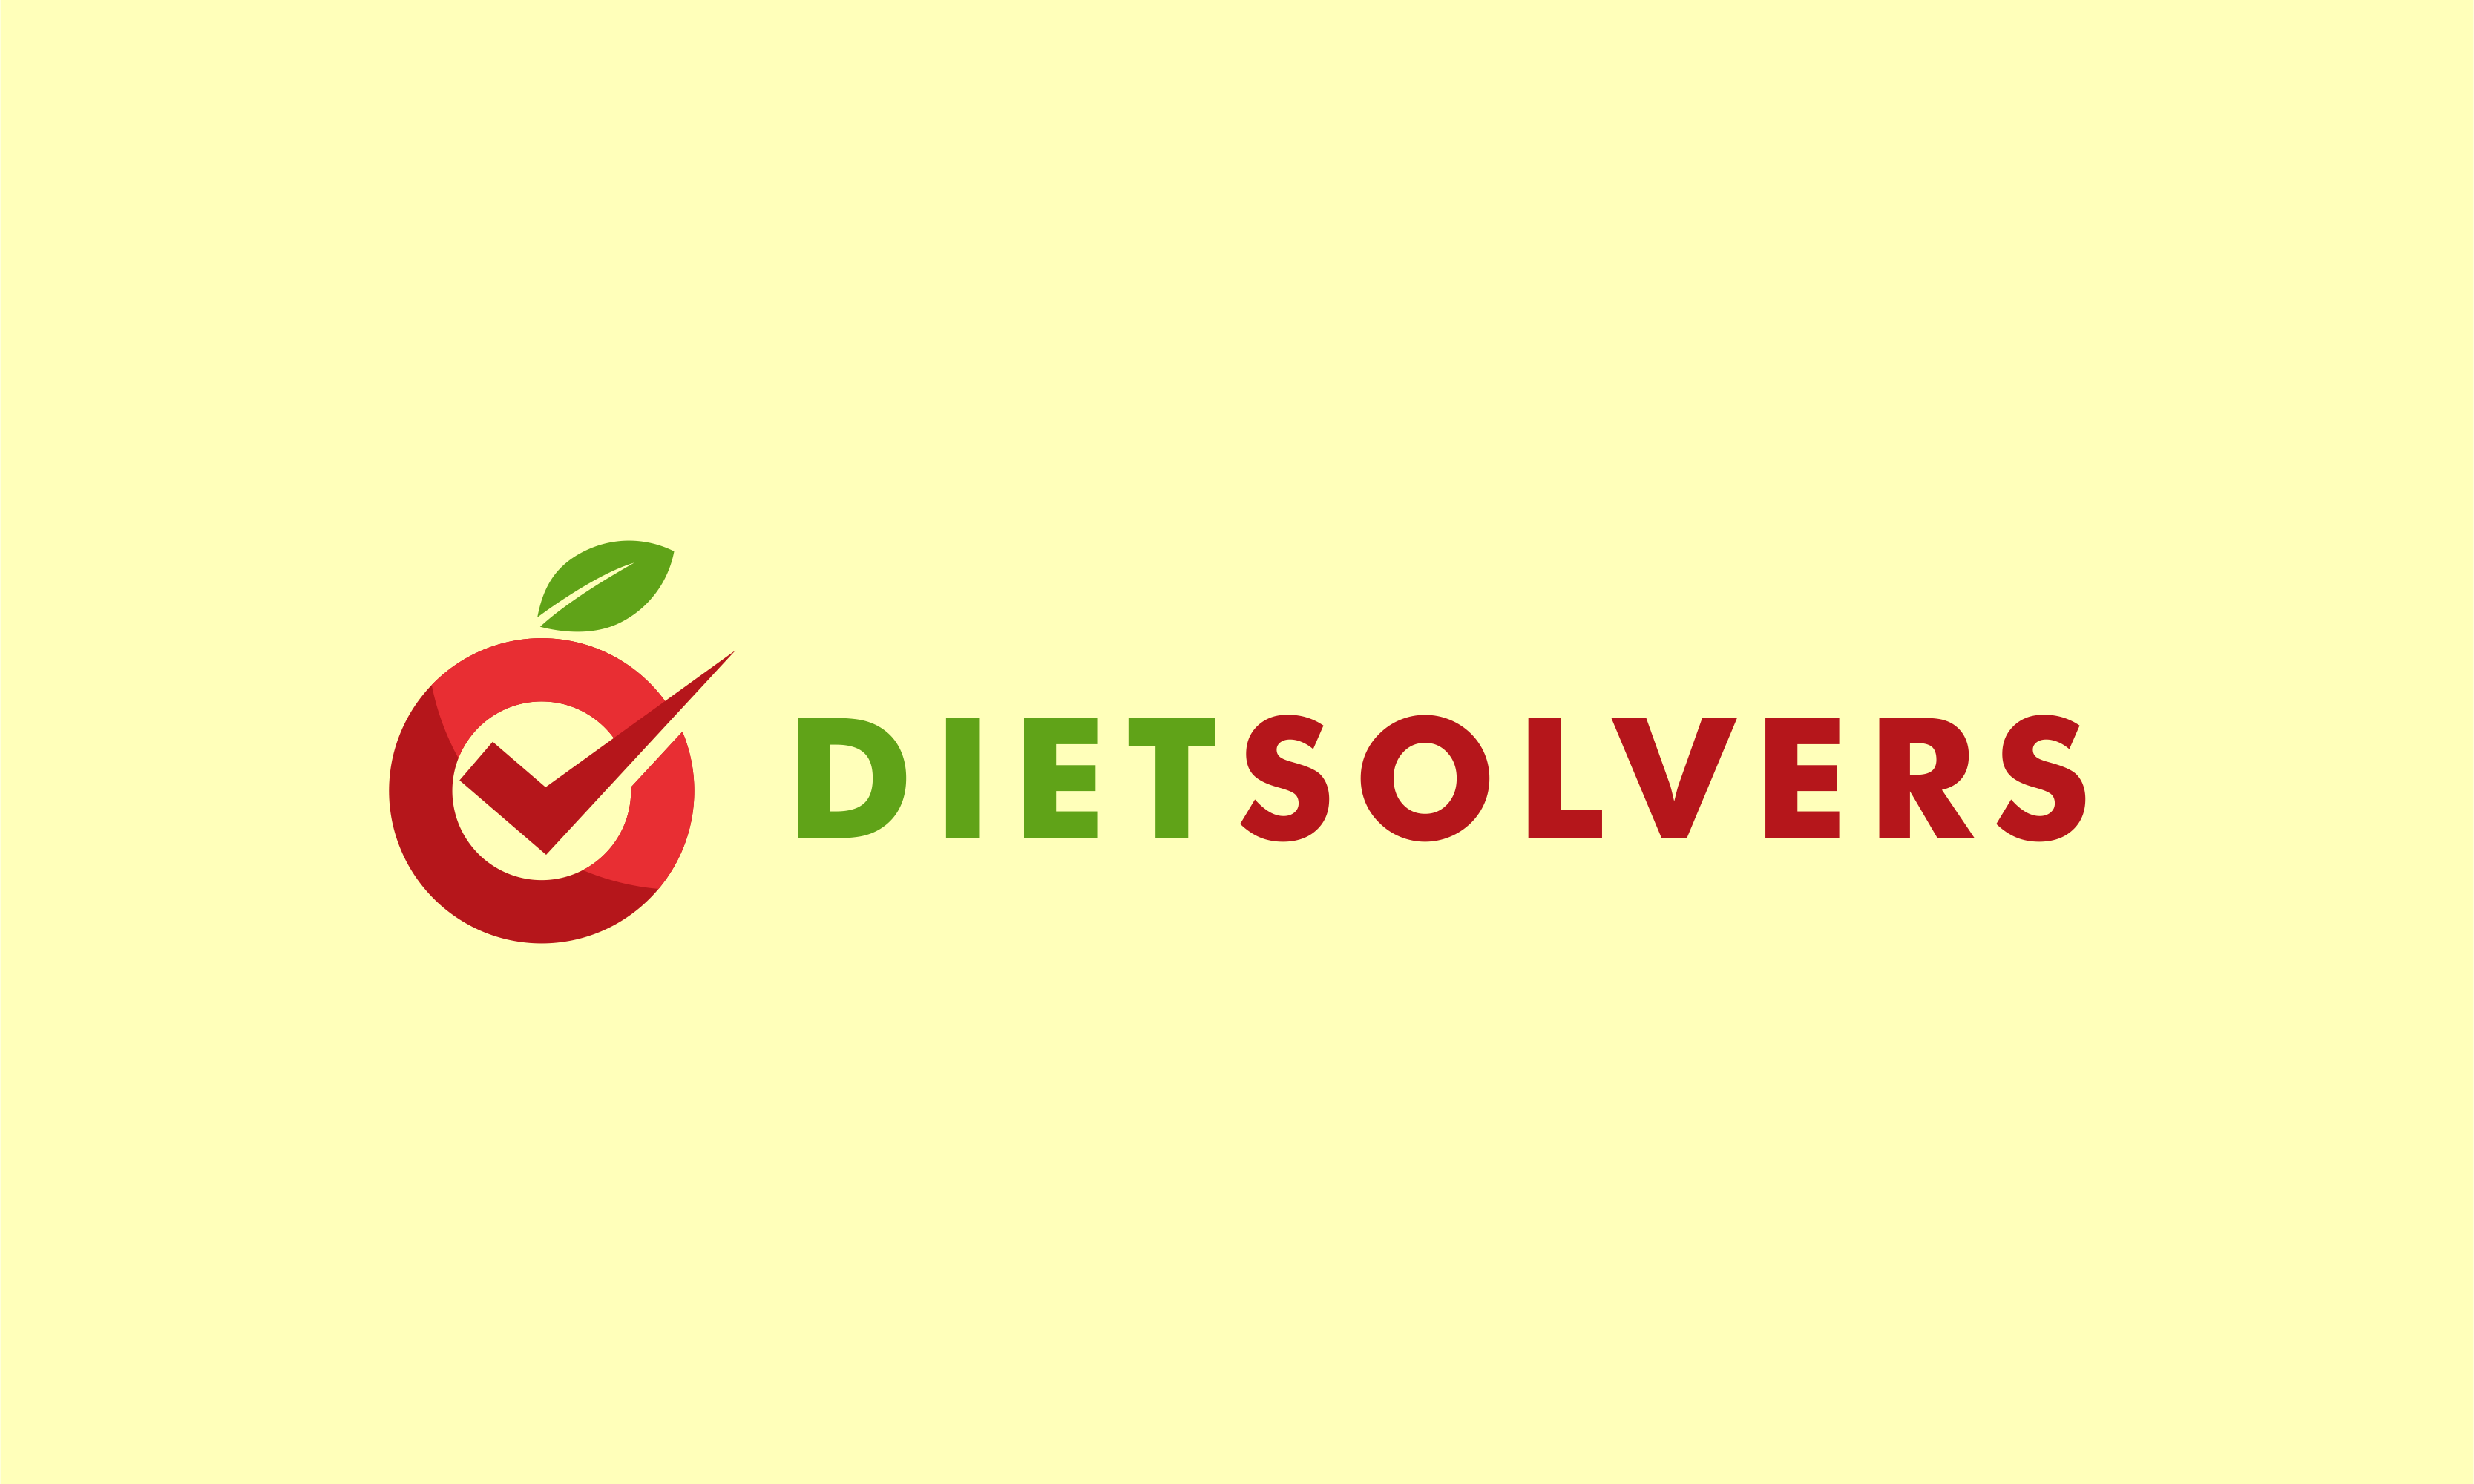 Dietsolvers - Nutrition domain name for sale